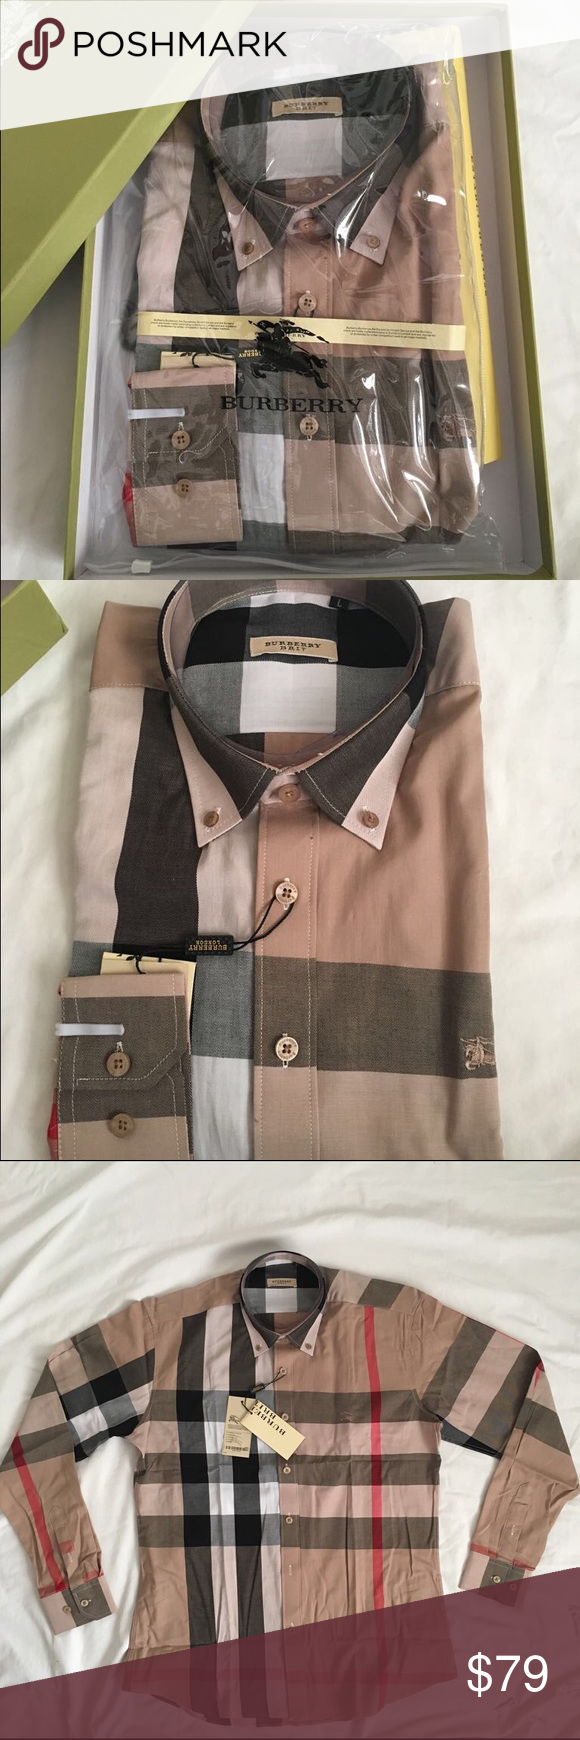 Burberry Mens Shirt Brand New Burberry Shirt For Men Come With